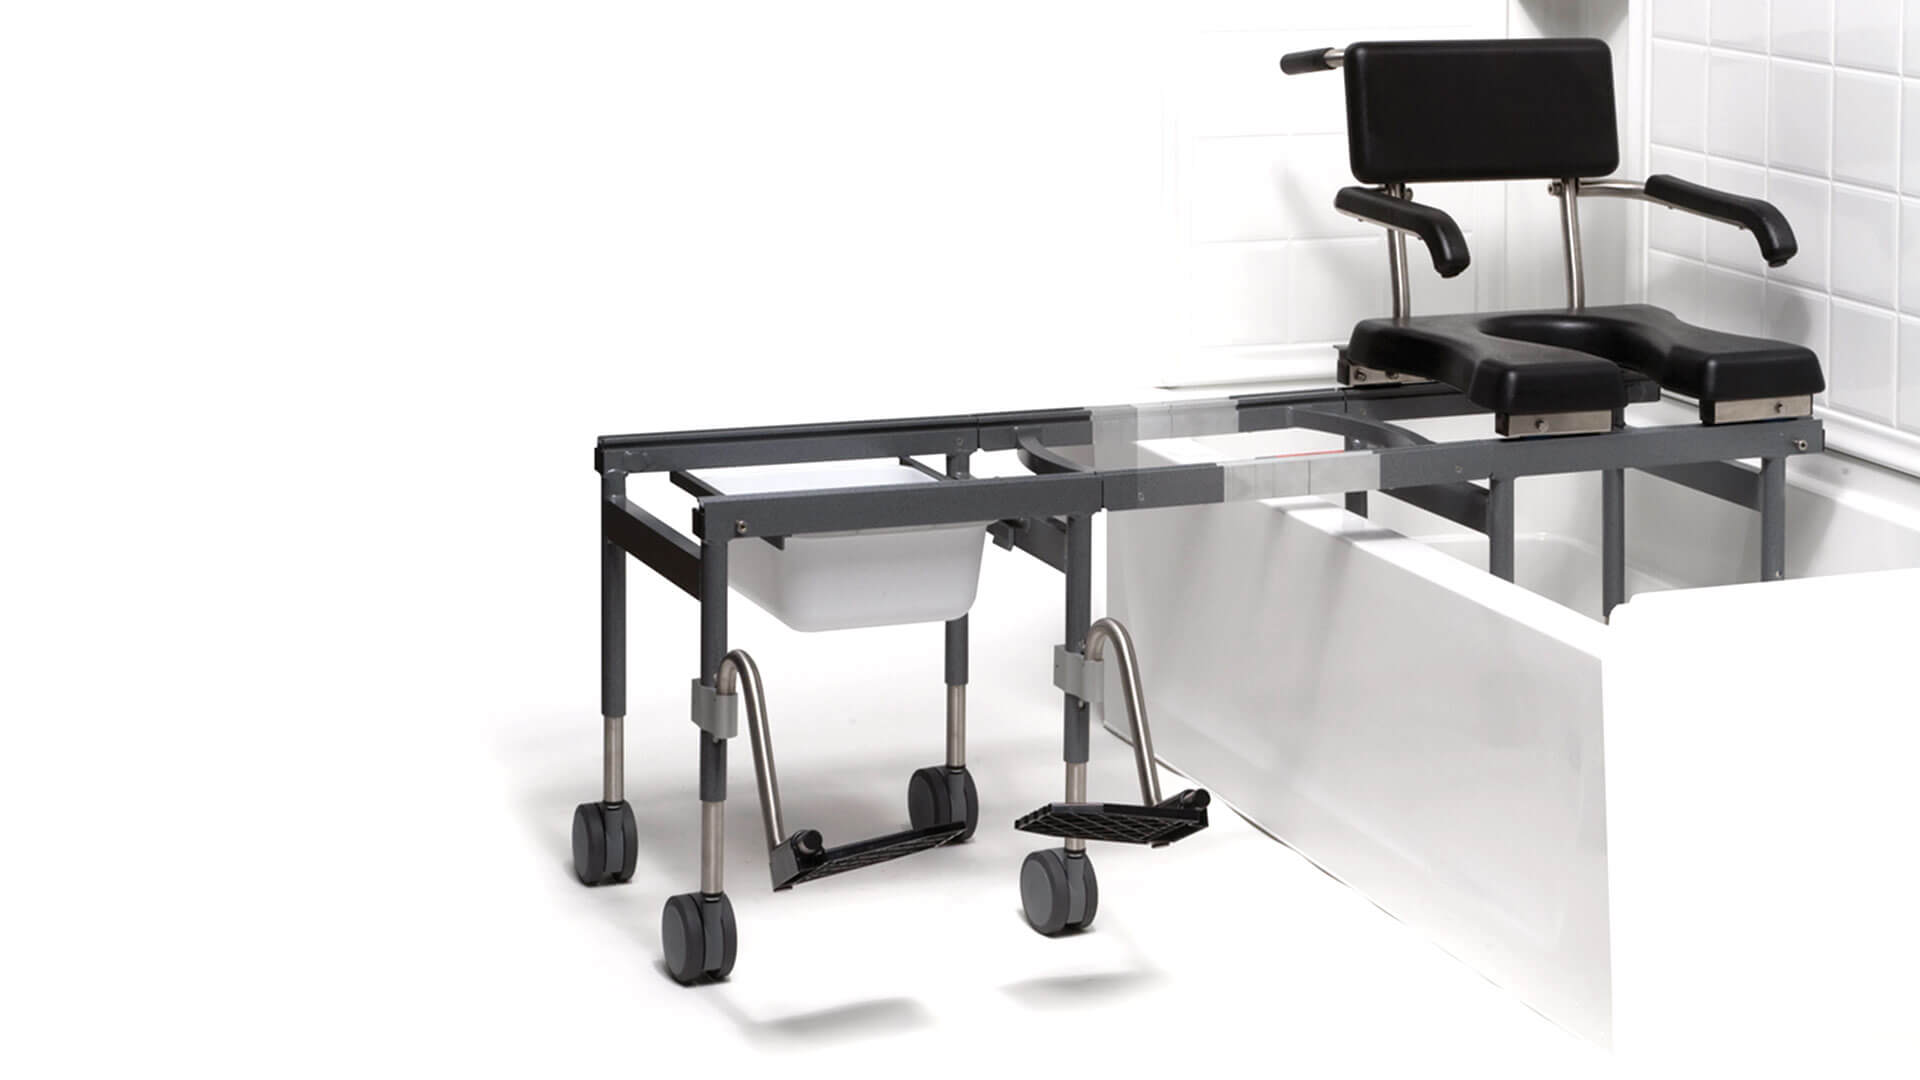 Versa Bath Transfer and Commode  Inspired by Drive